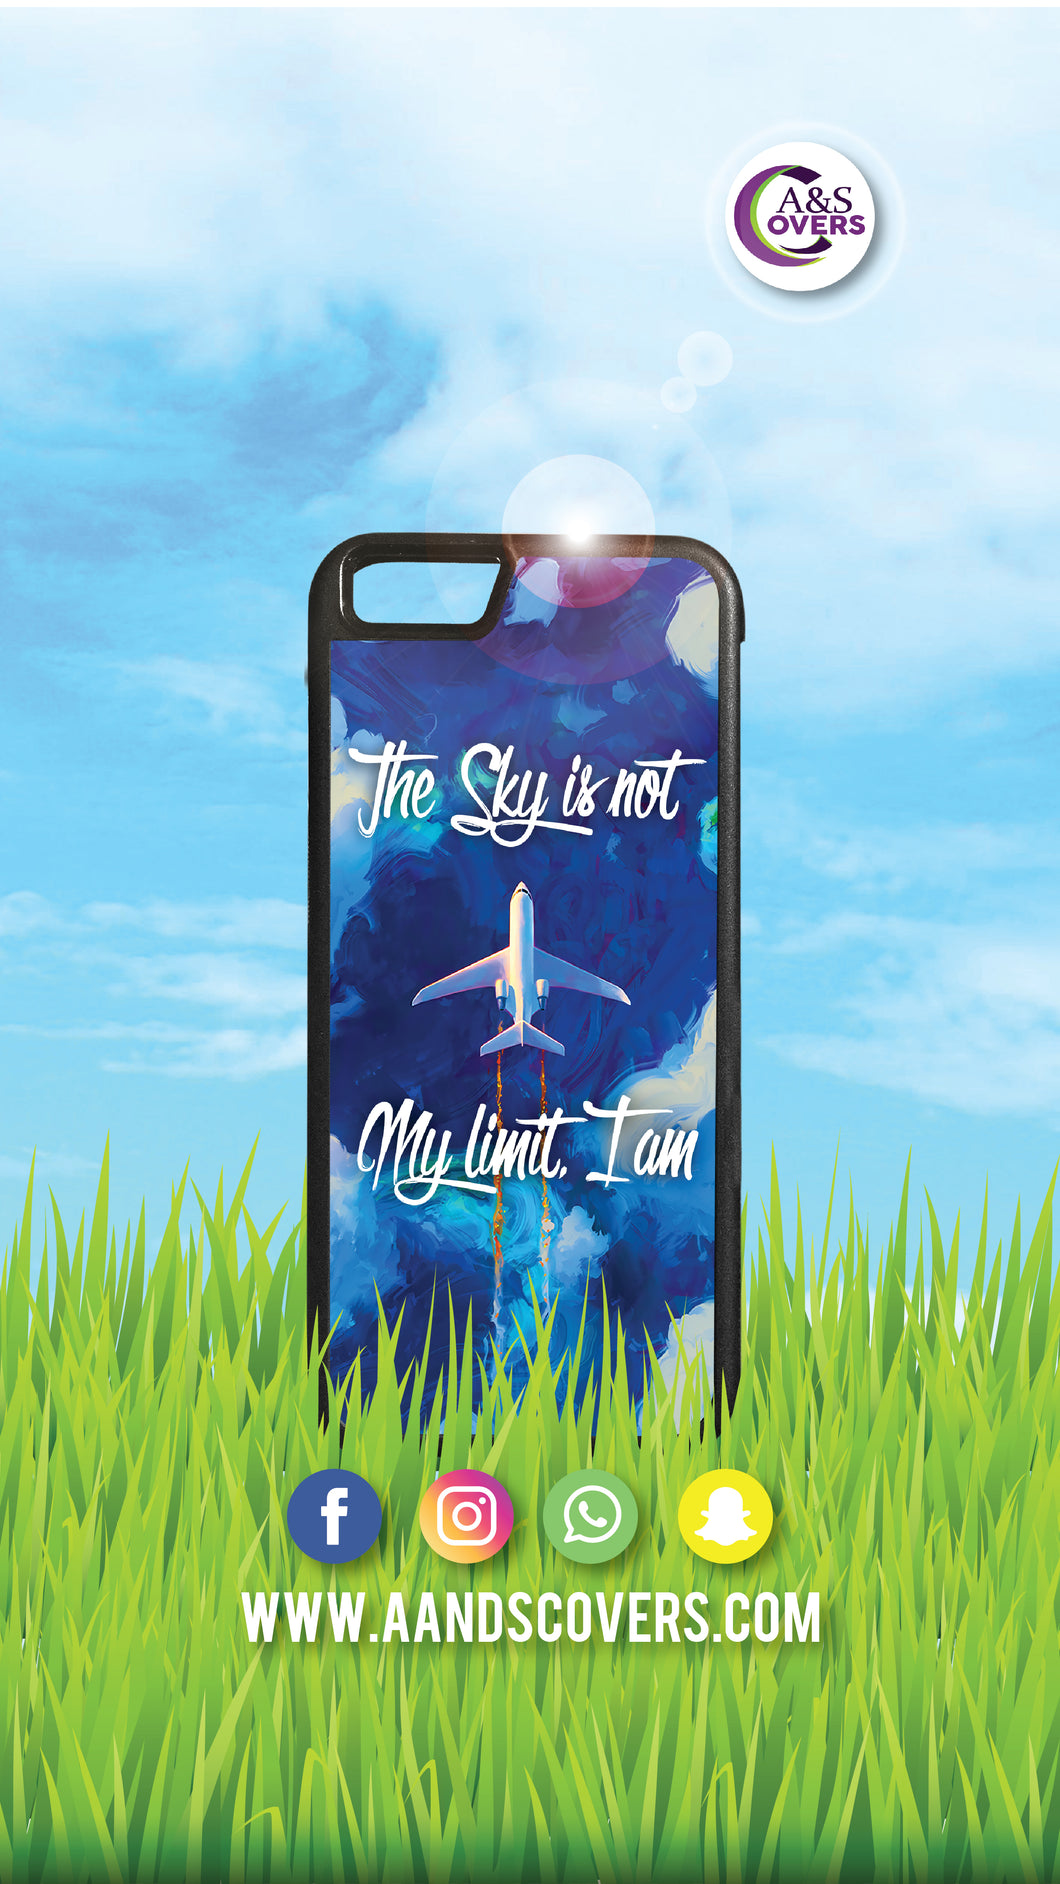 The sky is not my limit (wallpaper)